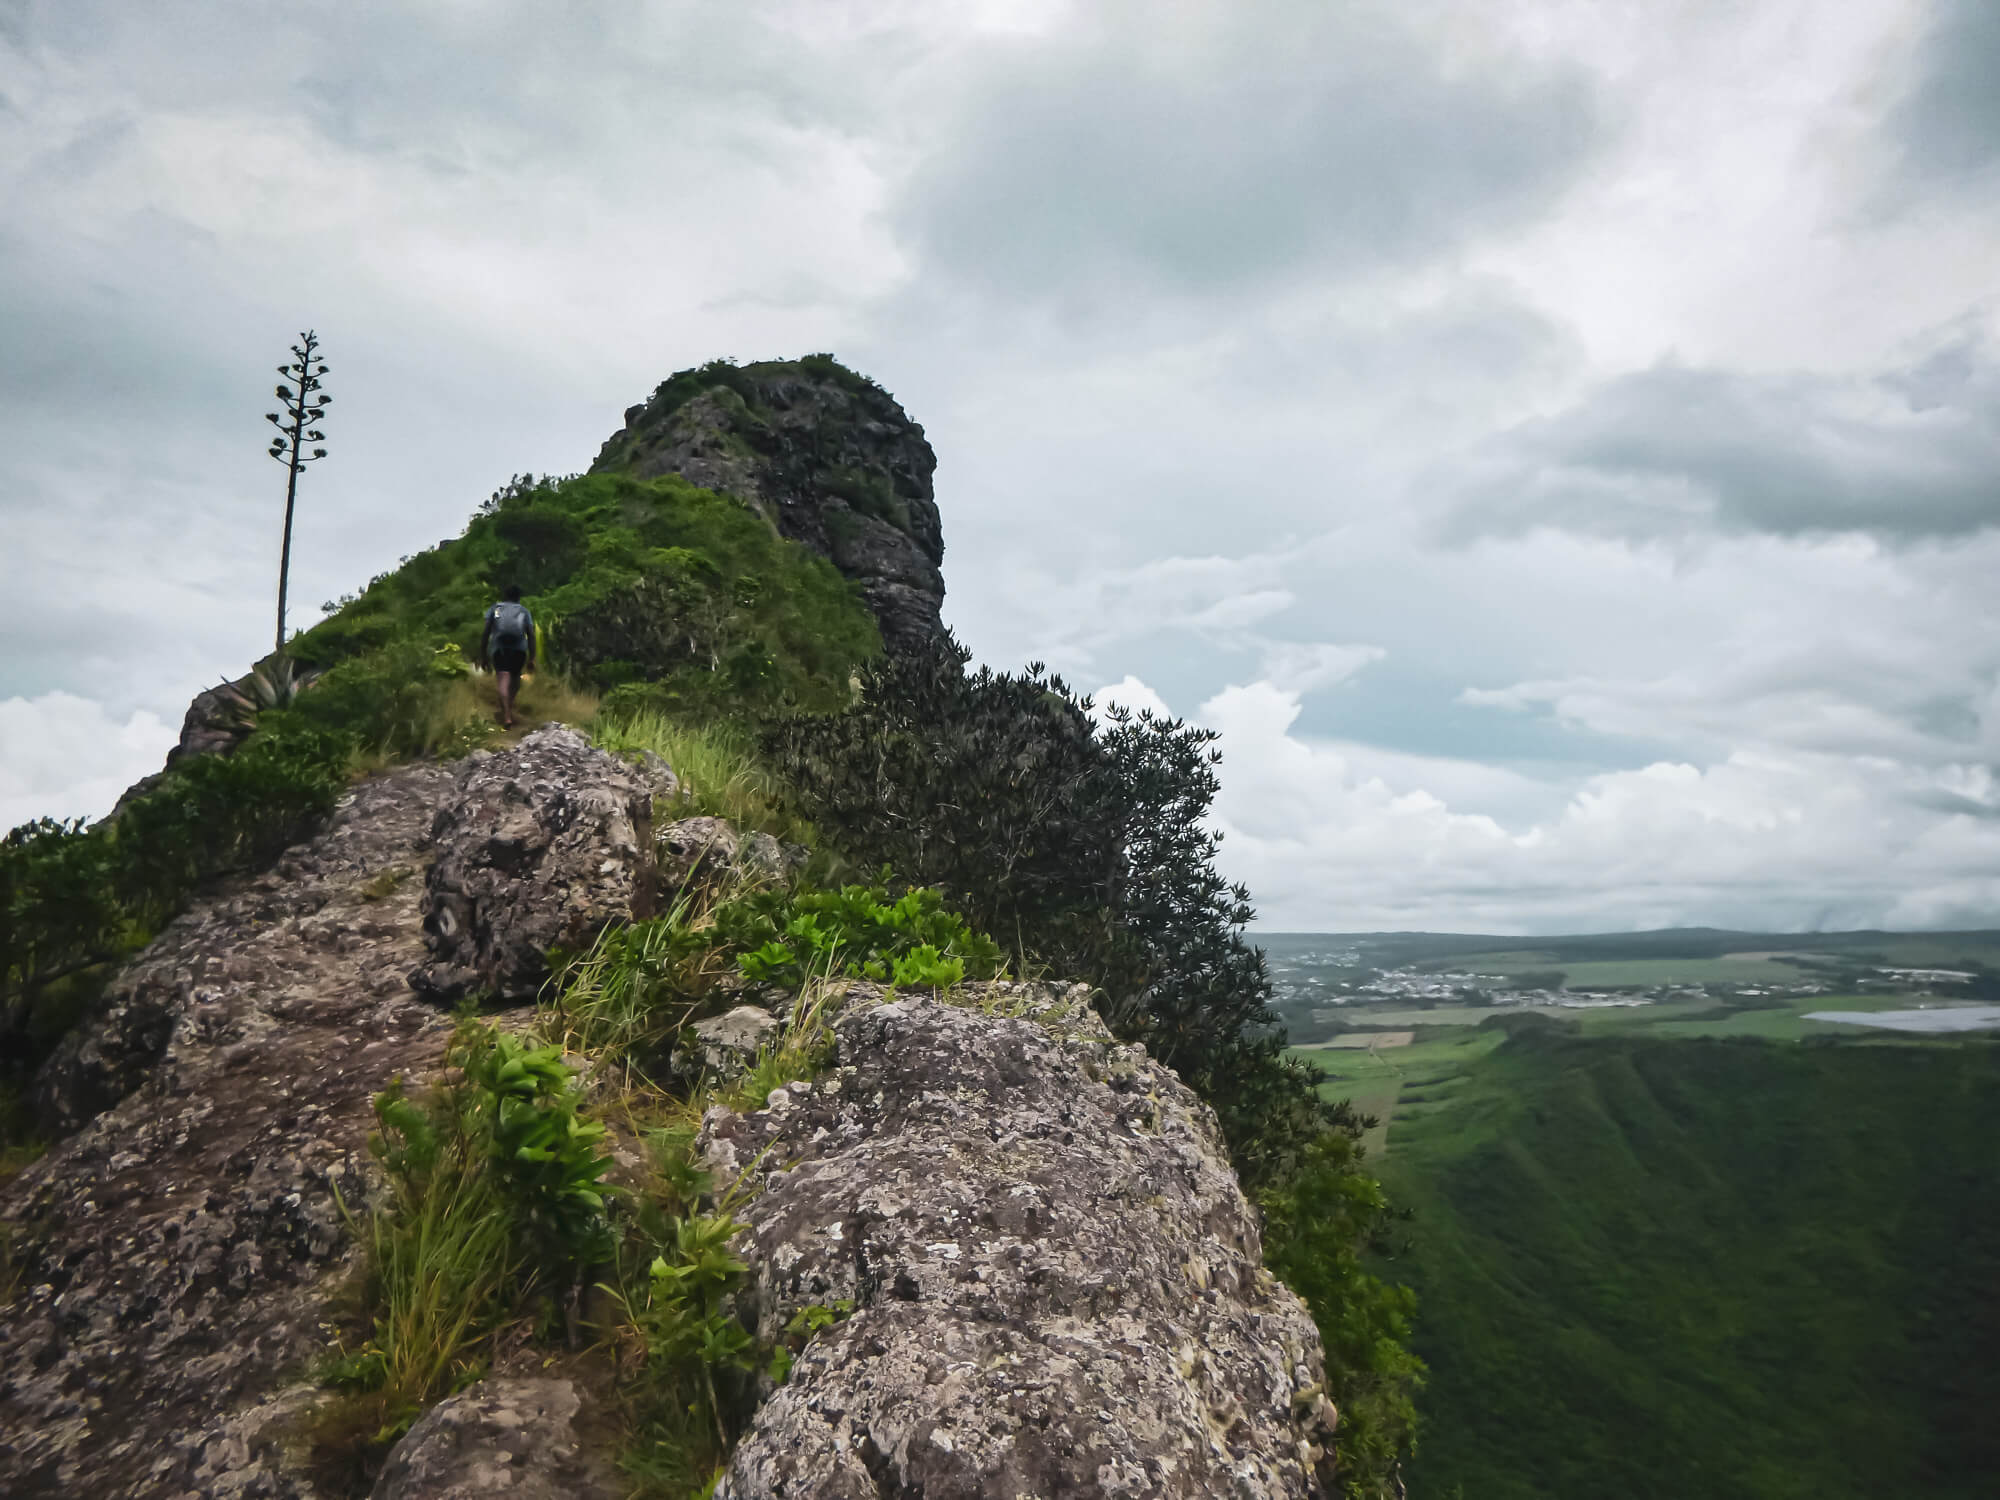 Hiking up Trois Mamelle mountain in Mauritius